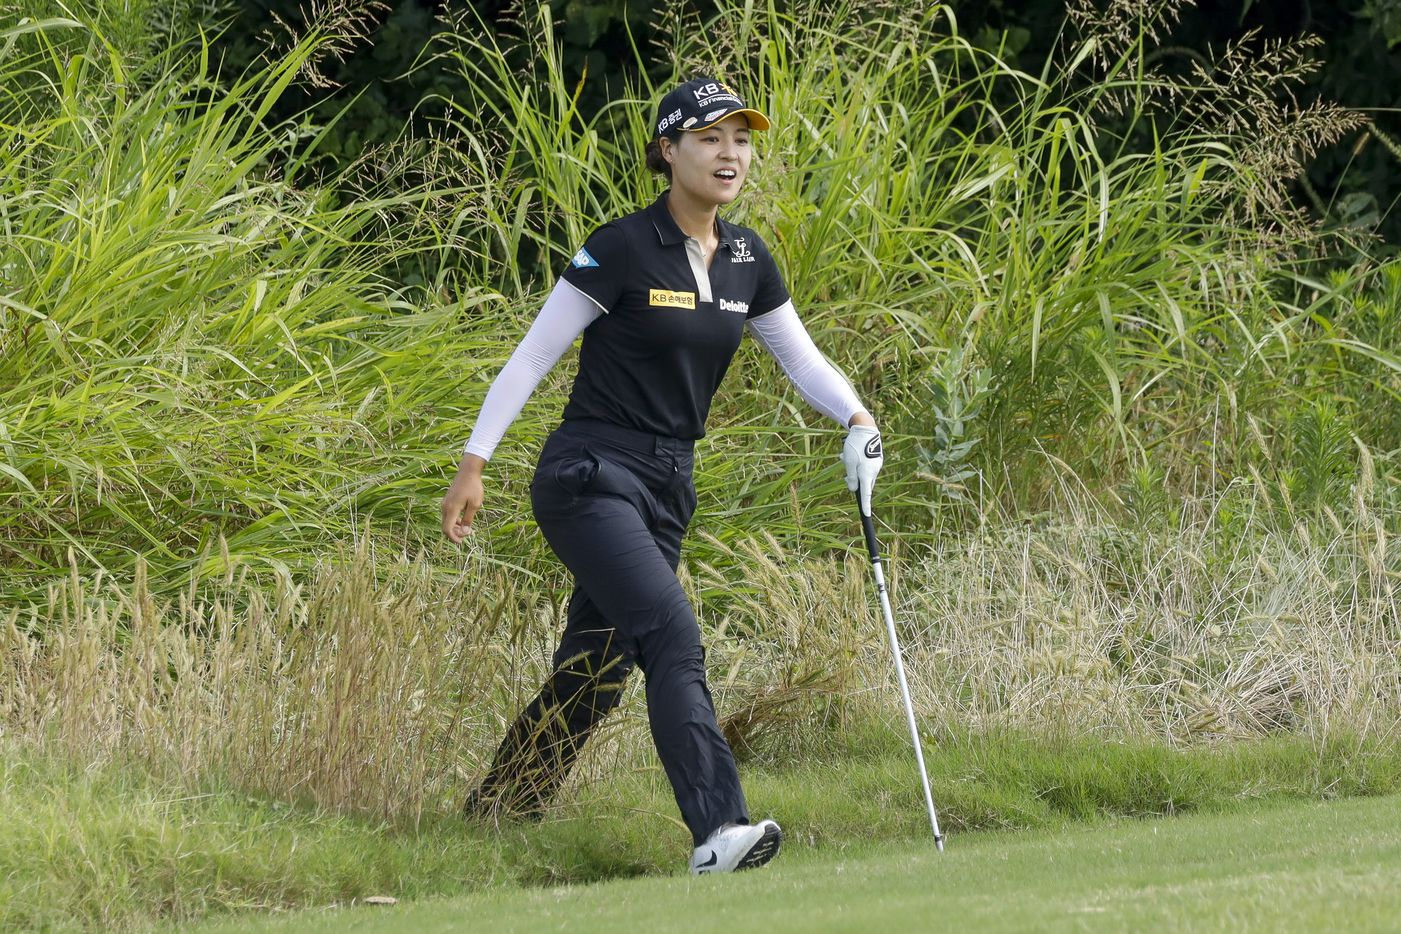 Professional golfer In Gee Chun reacts after playing out of the No. 8 green side rough during the second round of the LPGA VOA Classic on Friday, July 2, 2021, in The Colony, Texas. (Elias Valverde II/The Dallas Morning News)